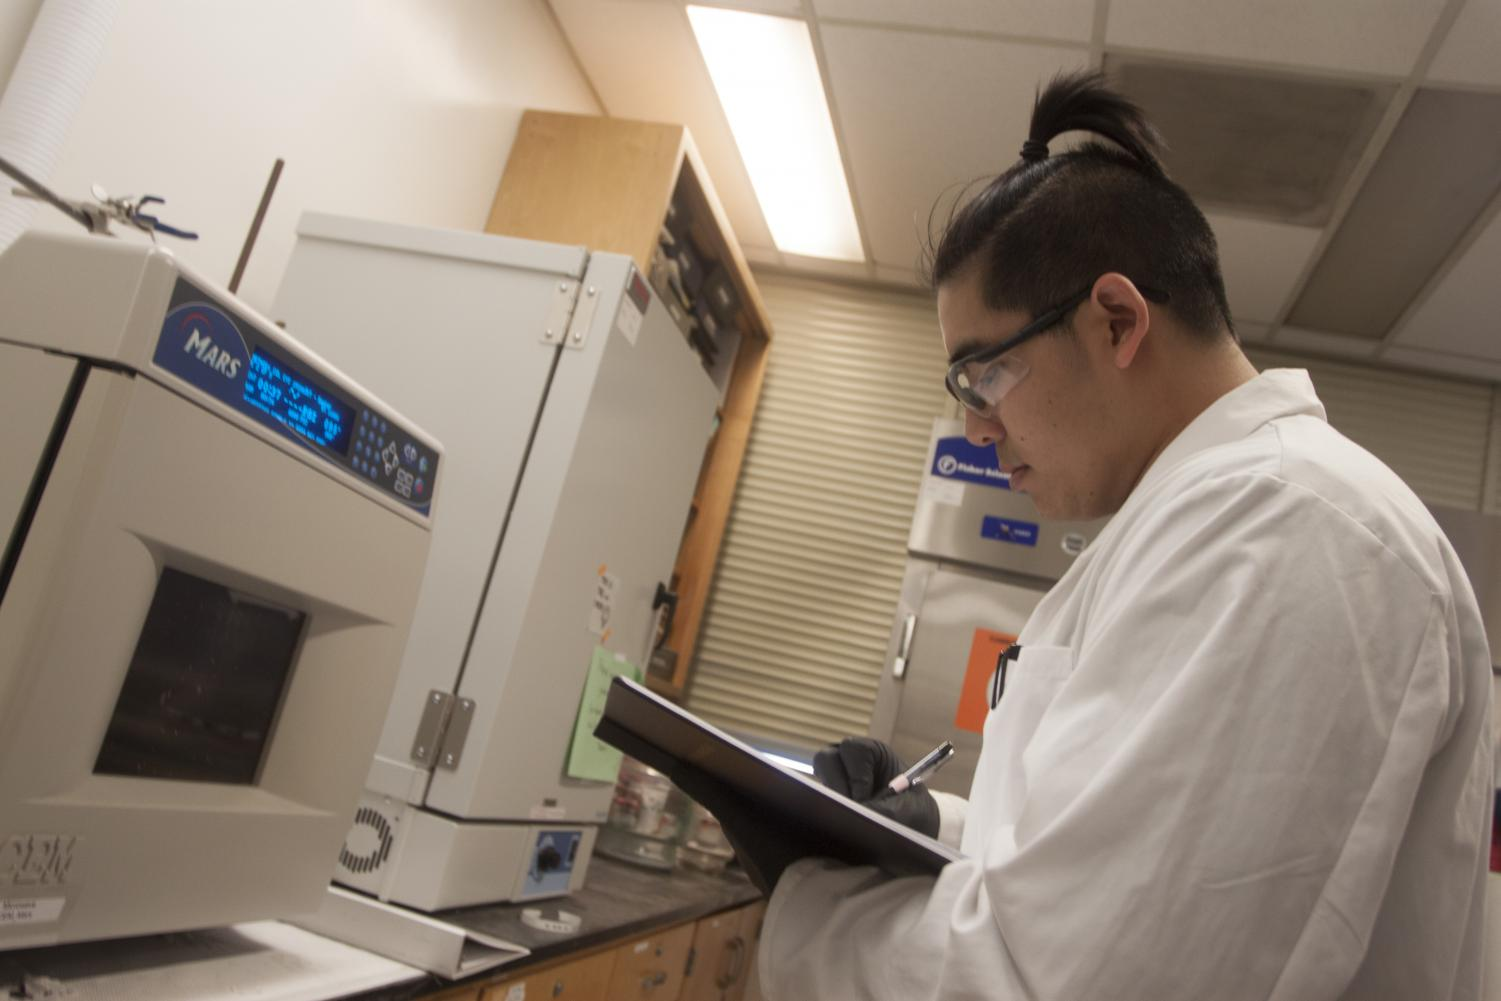 Biochemistry major Kevin Tran uses the microwave in a laboratory on the fifth floor of Sequoia Hall on April 19, 2018 to break down molecules. Tran is working with professor Katherine McReynolds on a project that may yield a topical medicine aimed at preventing the spread of HIV.